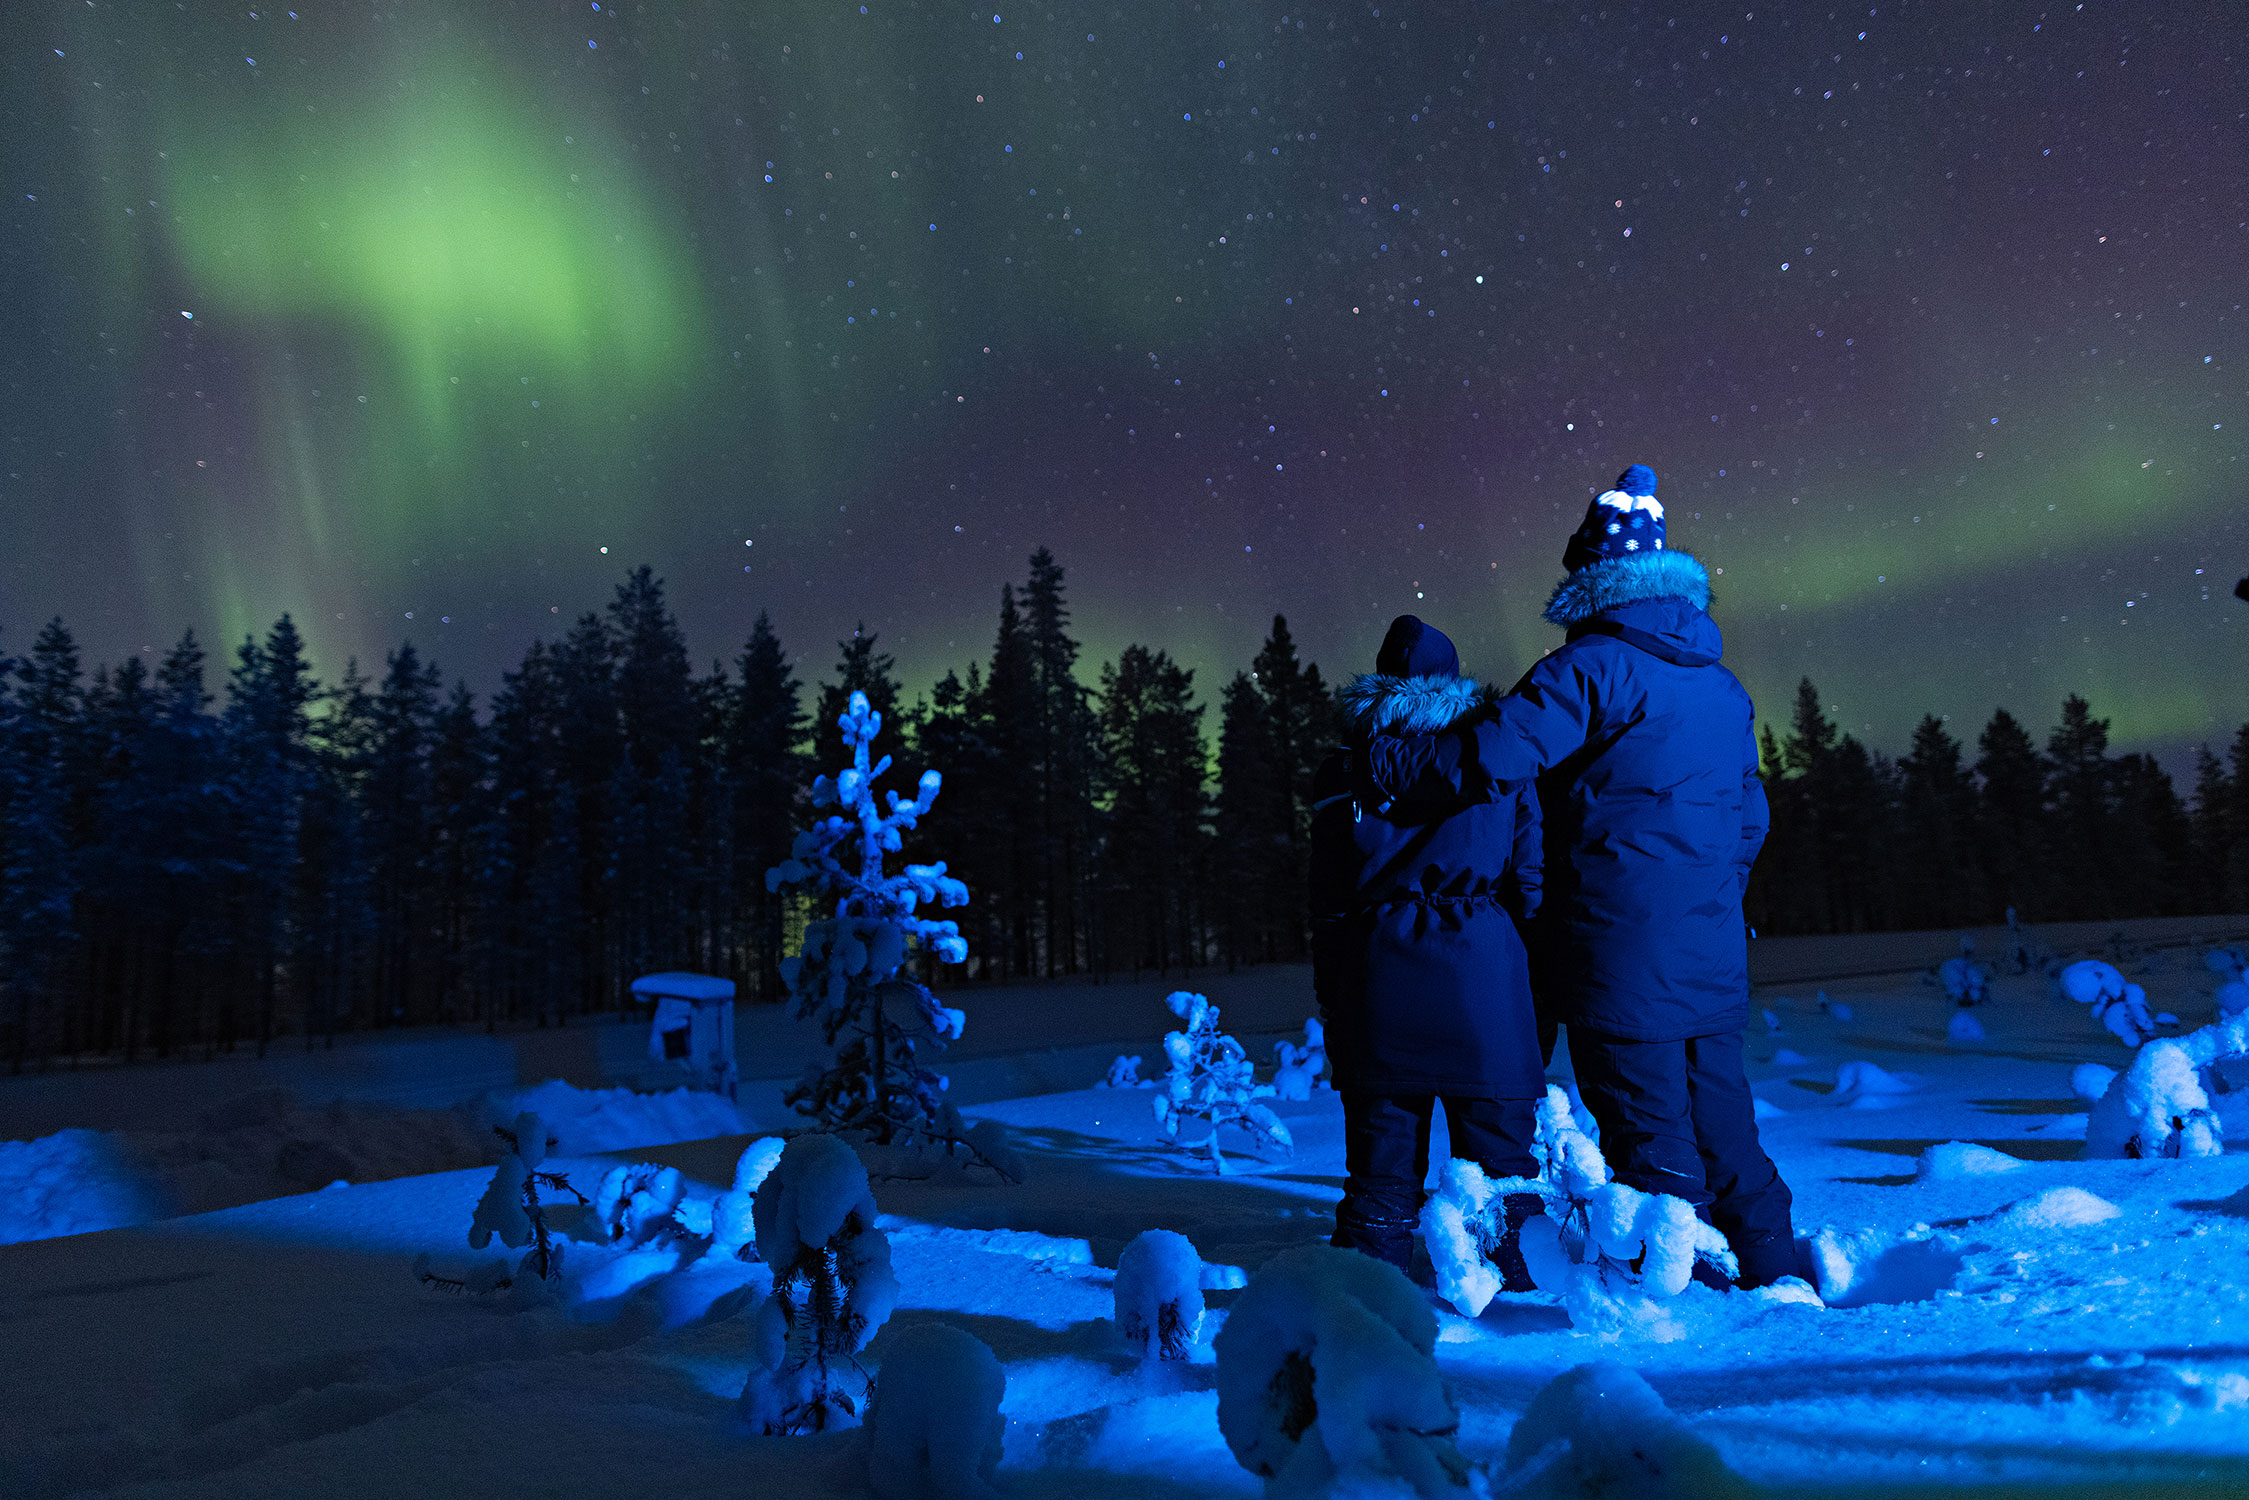 If you are lucky, you might even see the auroras during the autumn months.